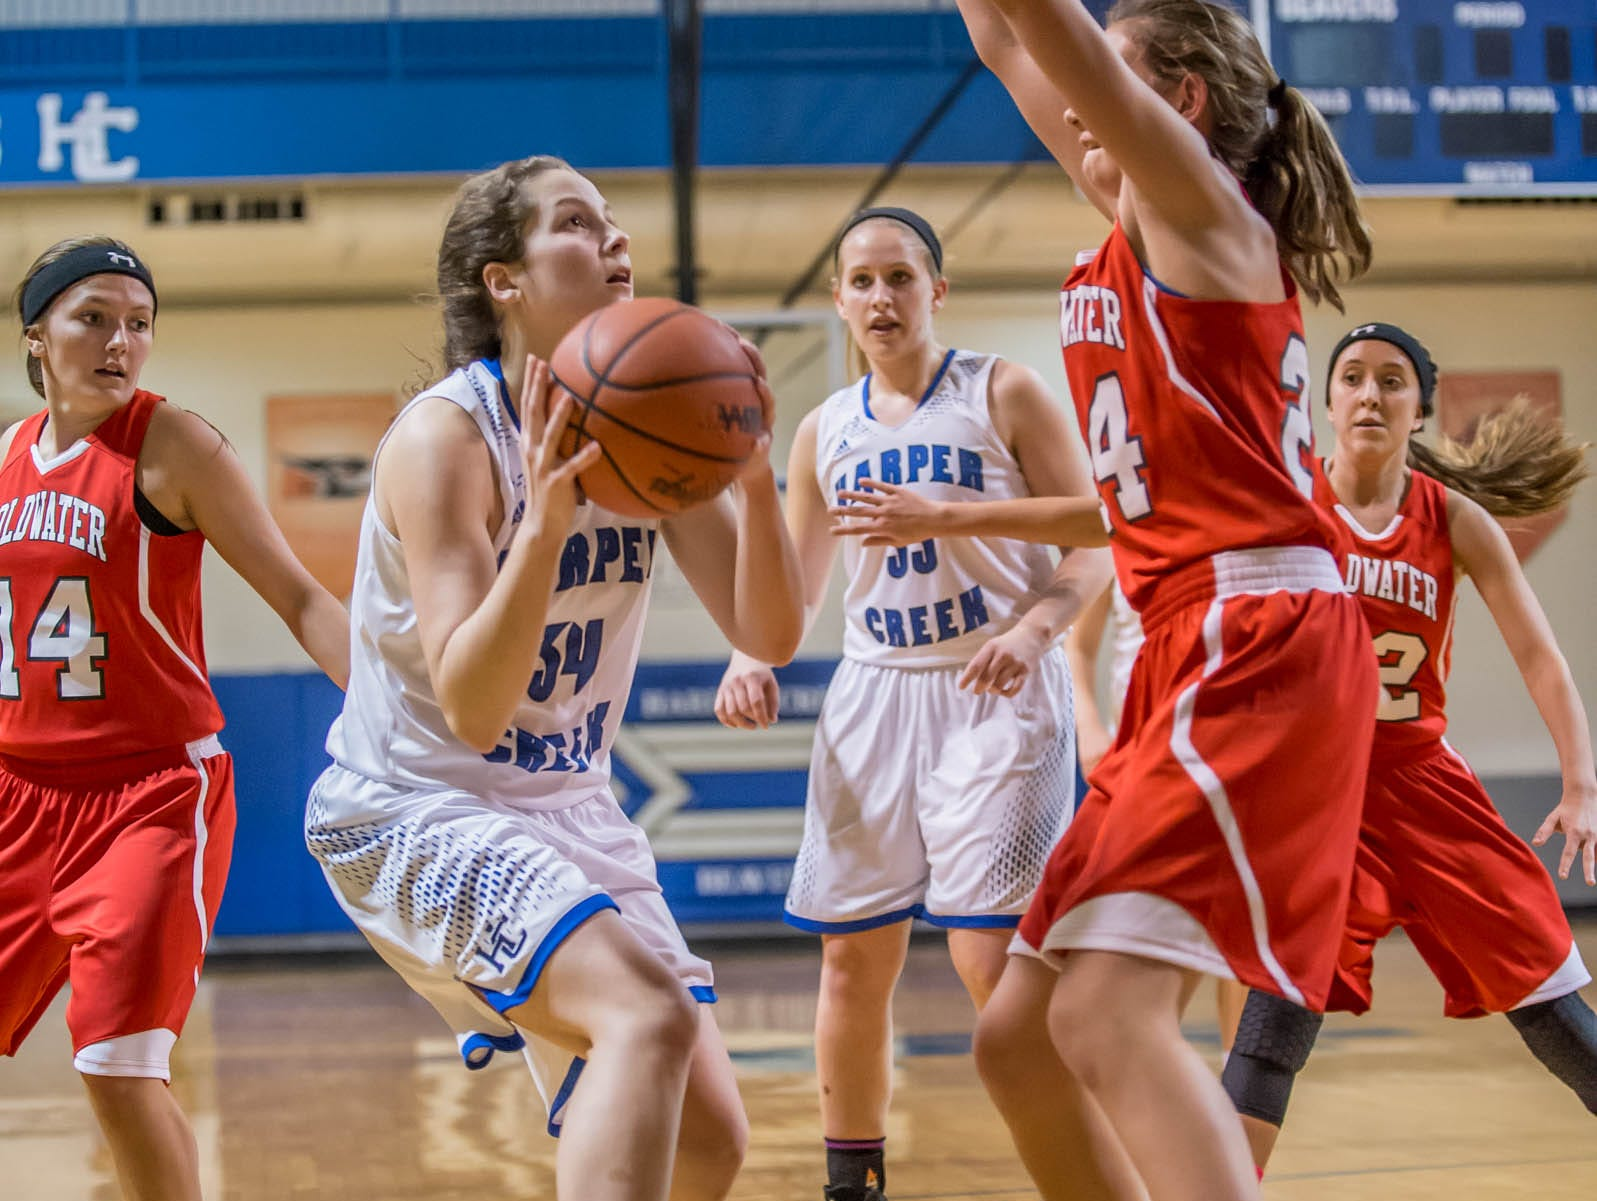 Harper Creek's Faith Hayes takes her shot against Coldwater in Friday evening's game.